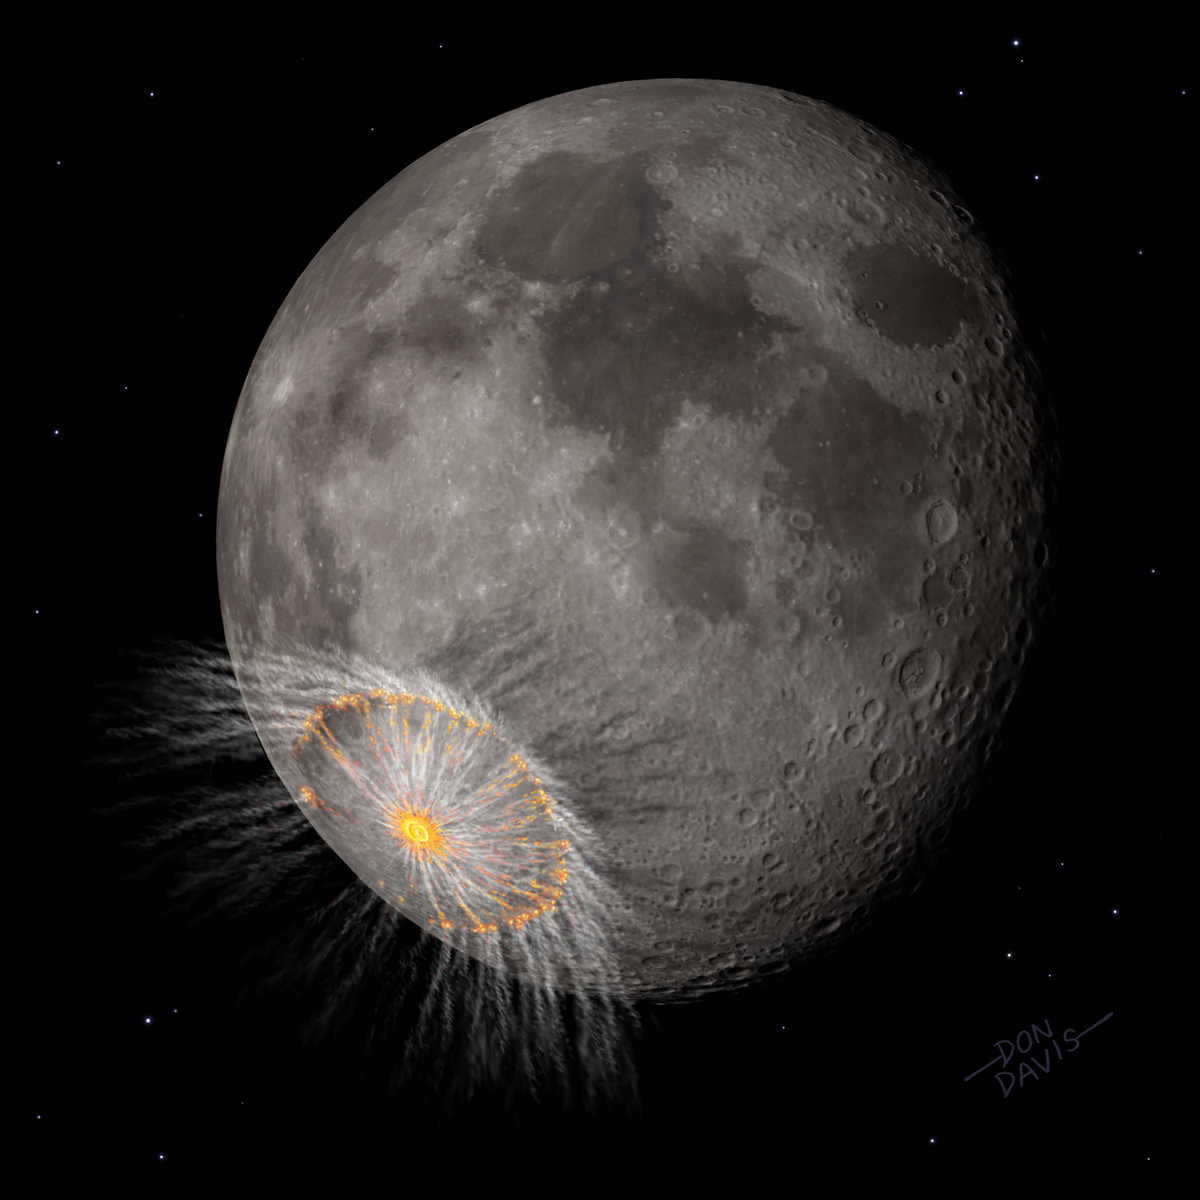 Download Image This image shows an artist's depiction of what a large lunar impact event might look like well after the end of lunar impact basin formation